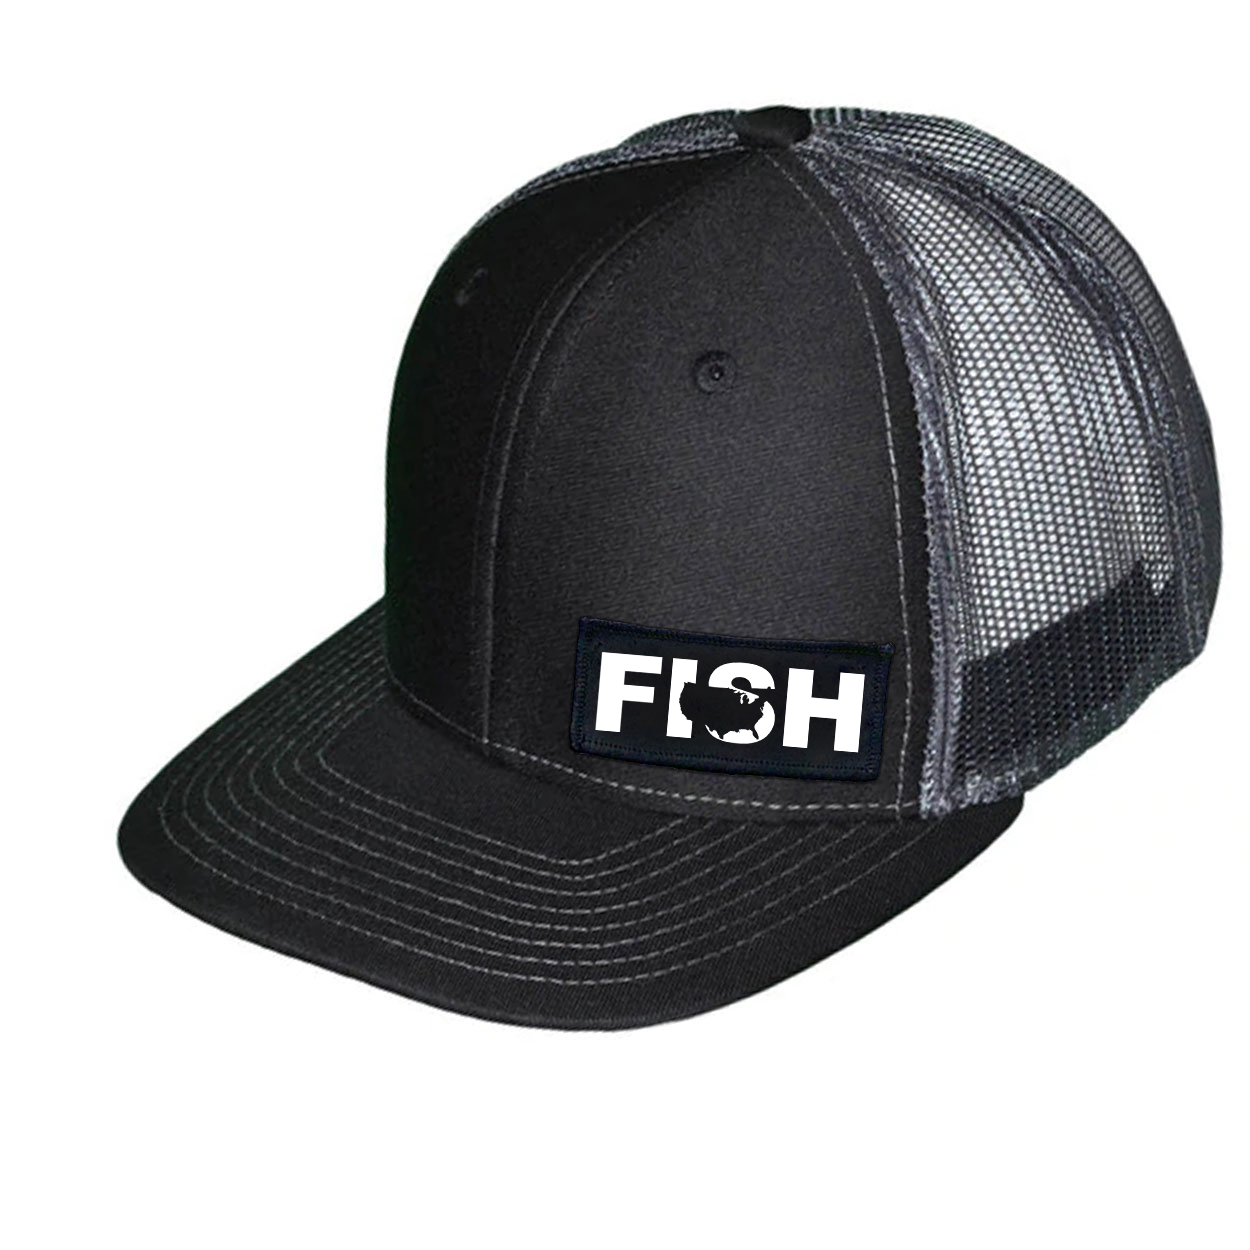 Fish United States Night Out Woven Patch Snapback Trucker Hat Black/Dark Gray (White Logo)